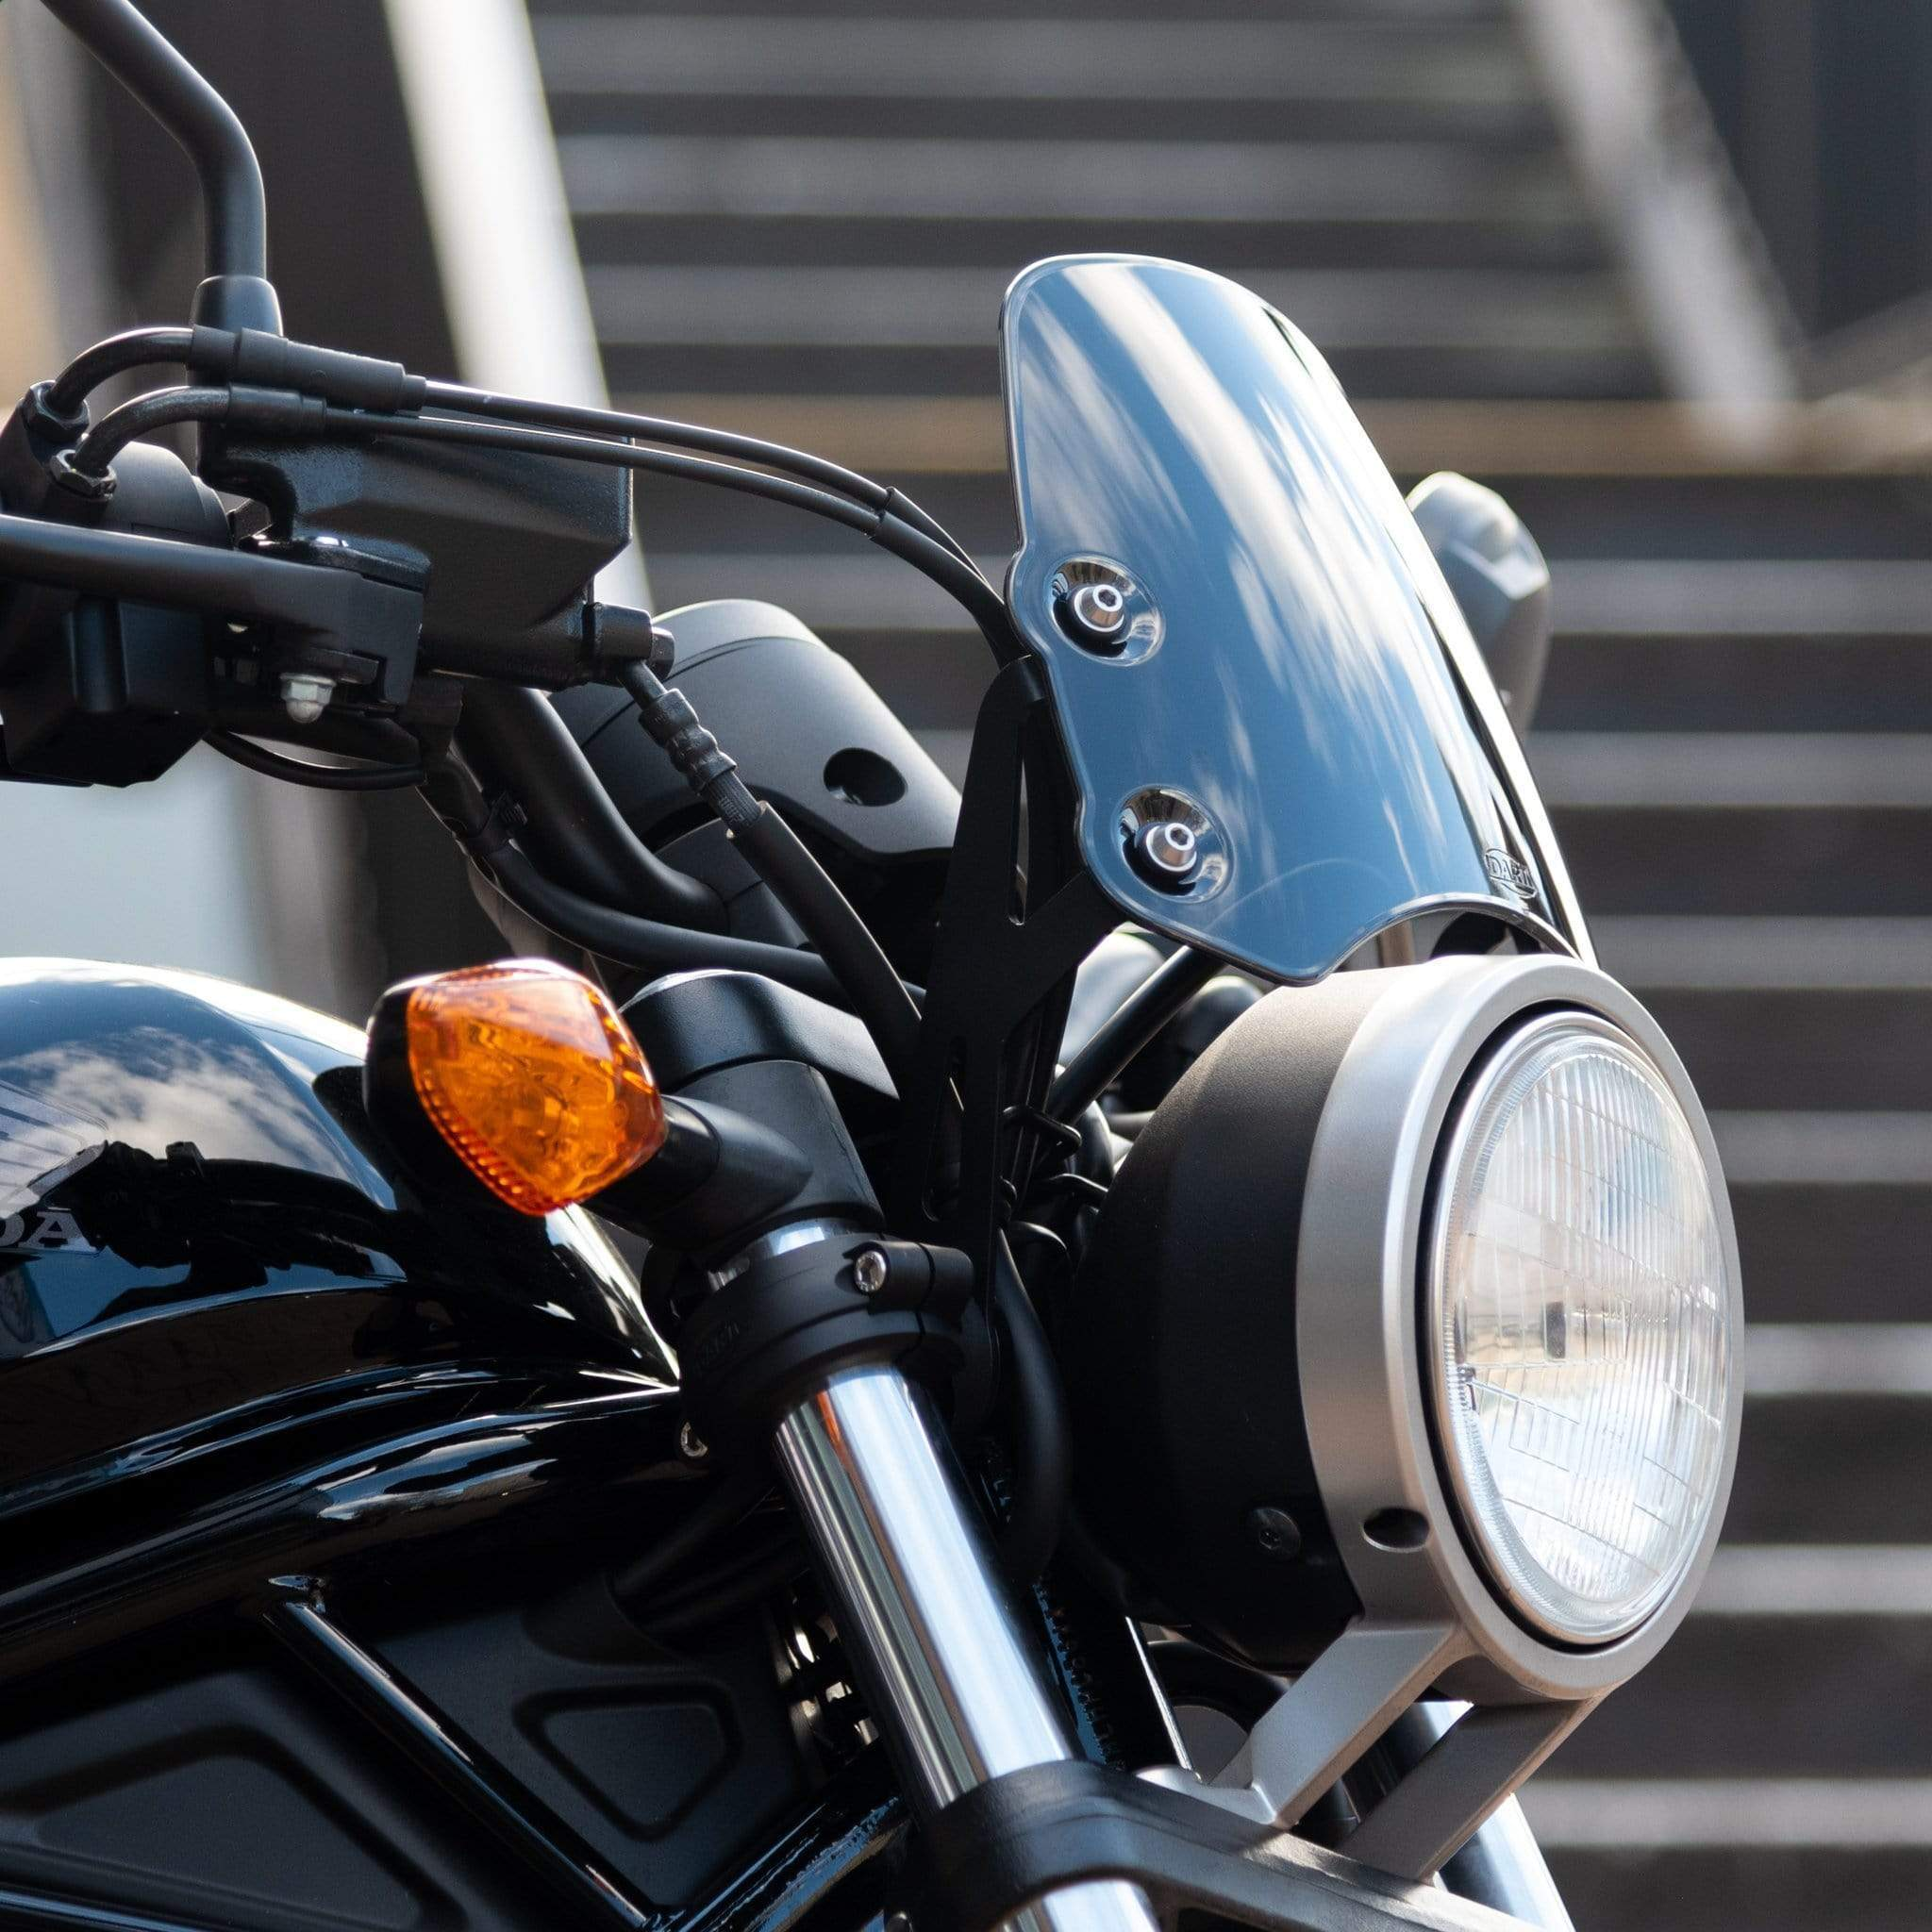 Honda CMX500 Rebel - Piranha Midnight black Piranha flyscreen Dart Flyscreen Windshield